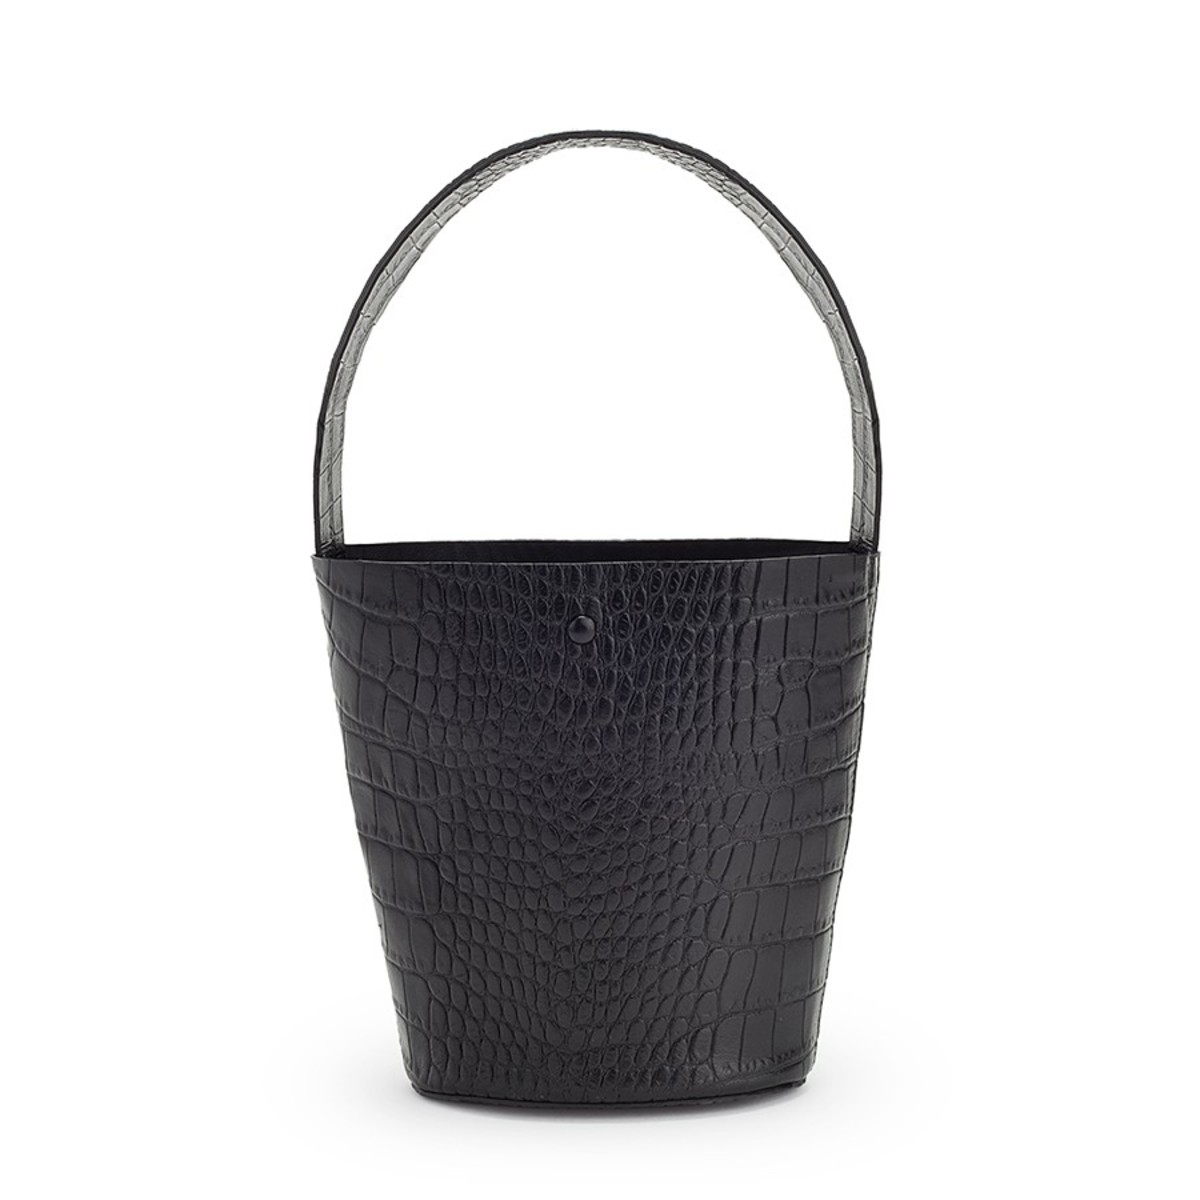 Cuyana Croc-Embossed Wide Strap Mini Bucket Bag, $195, available here.